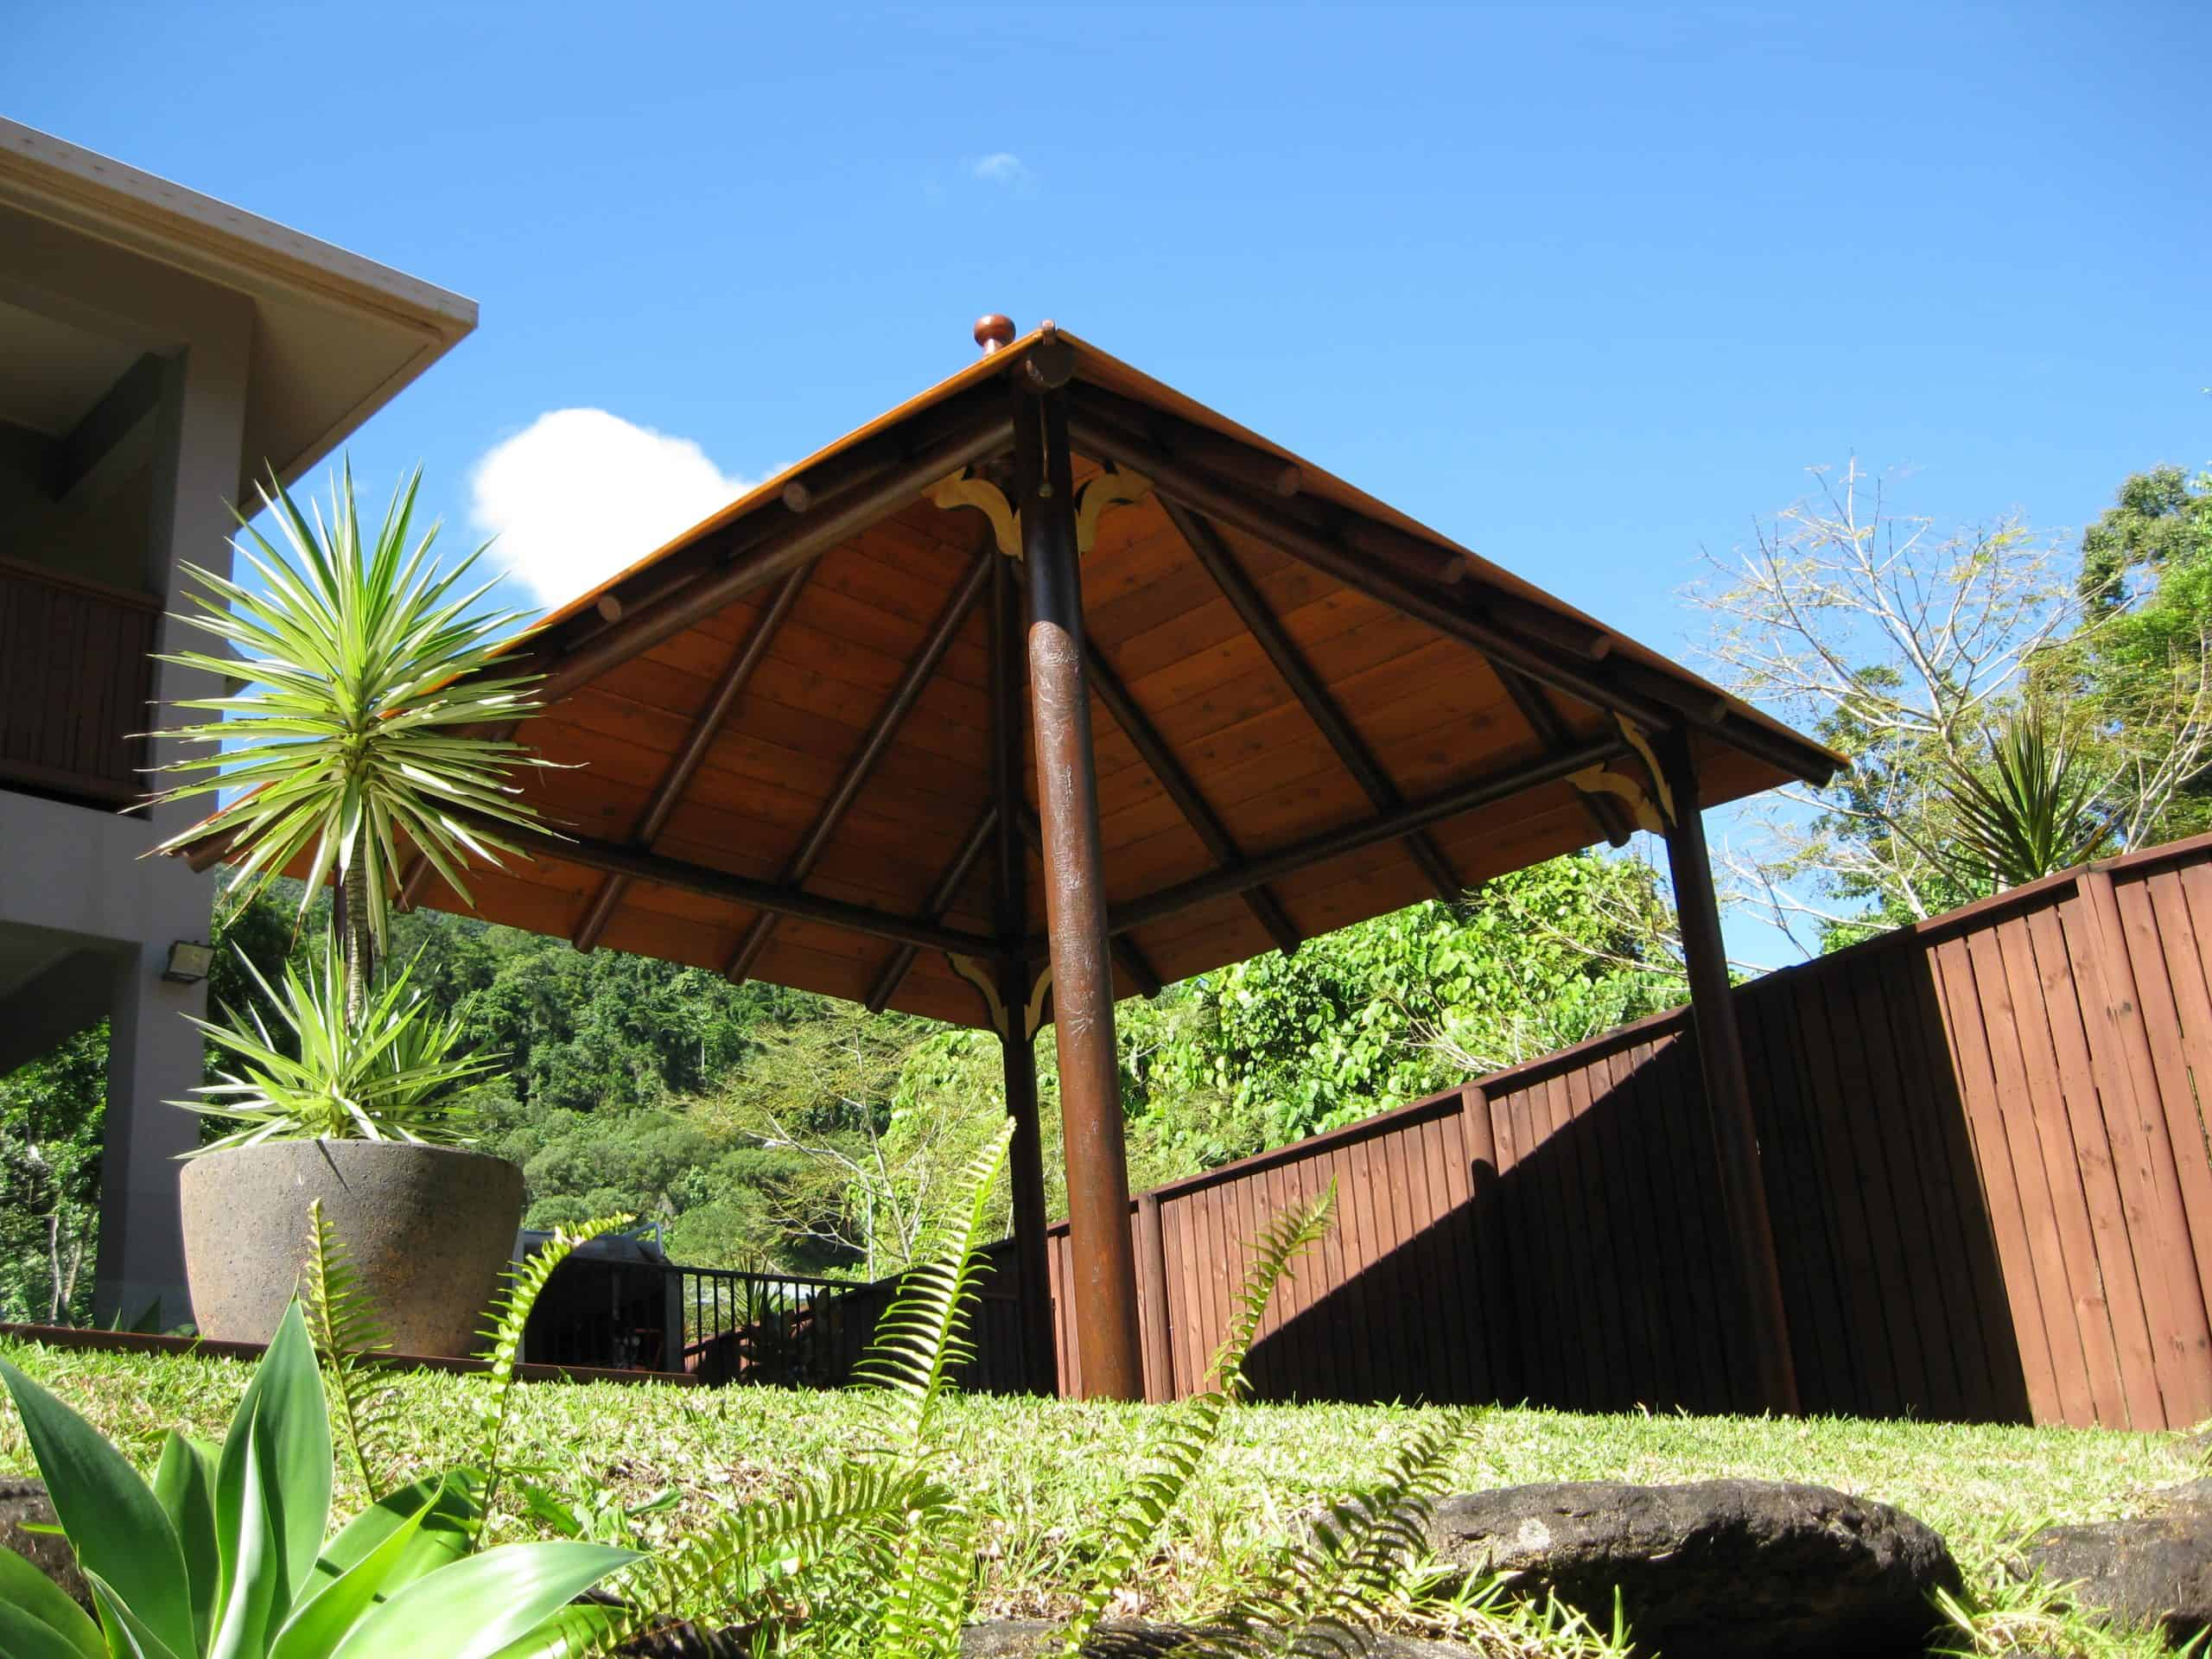 Grand Gazebos and Cubbies - 3.8m Hipped Pavilion on grass